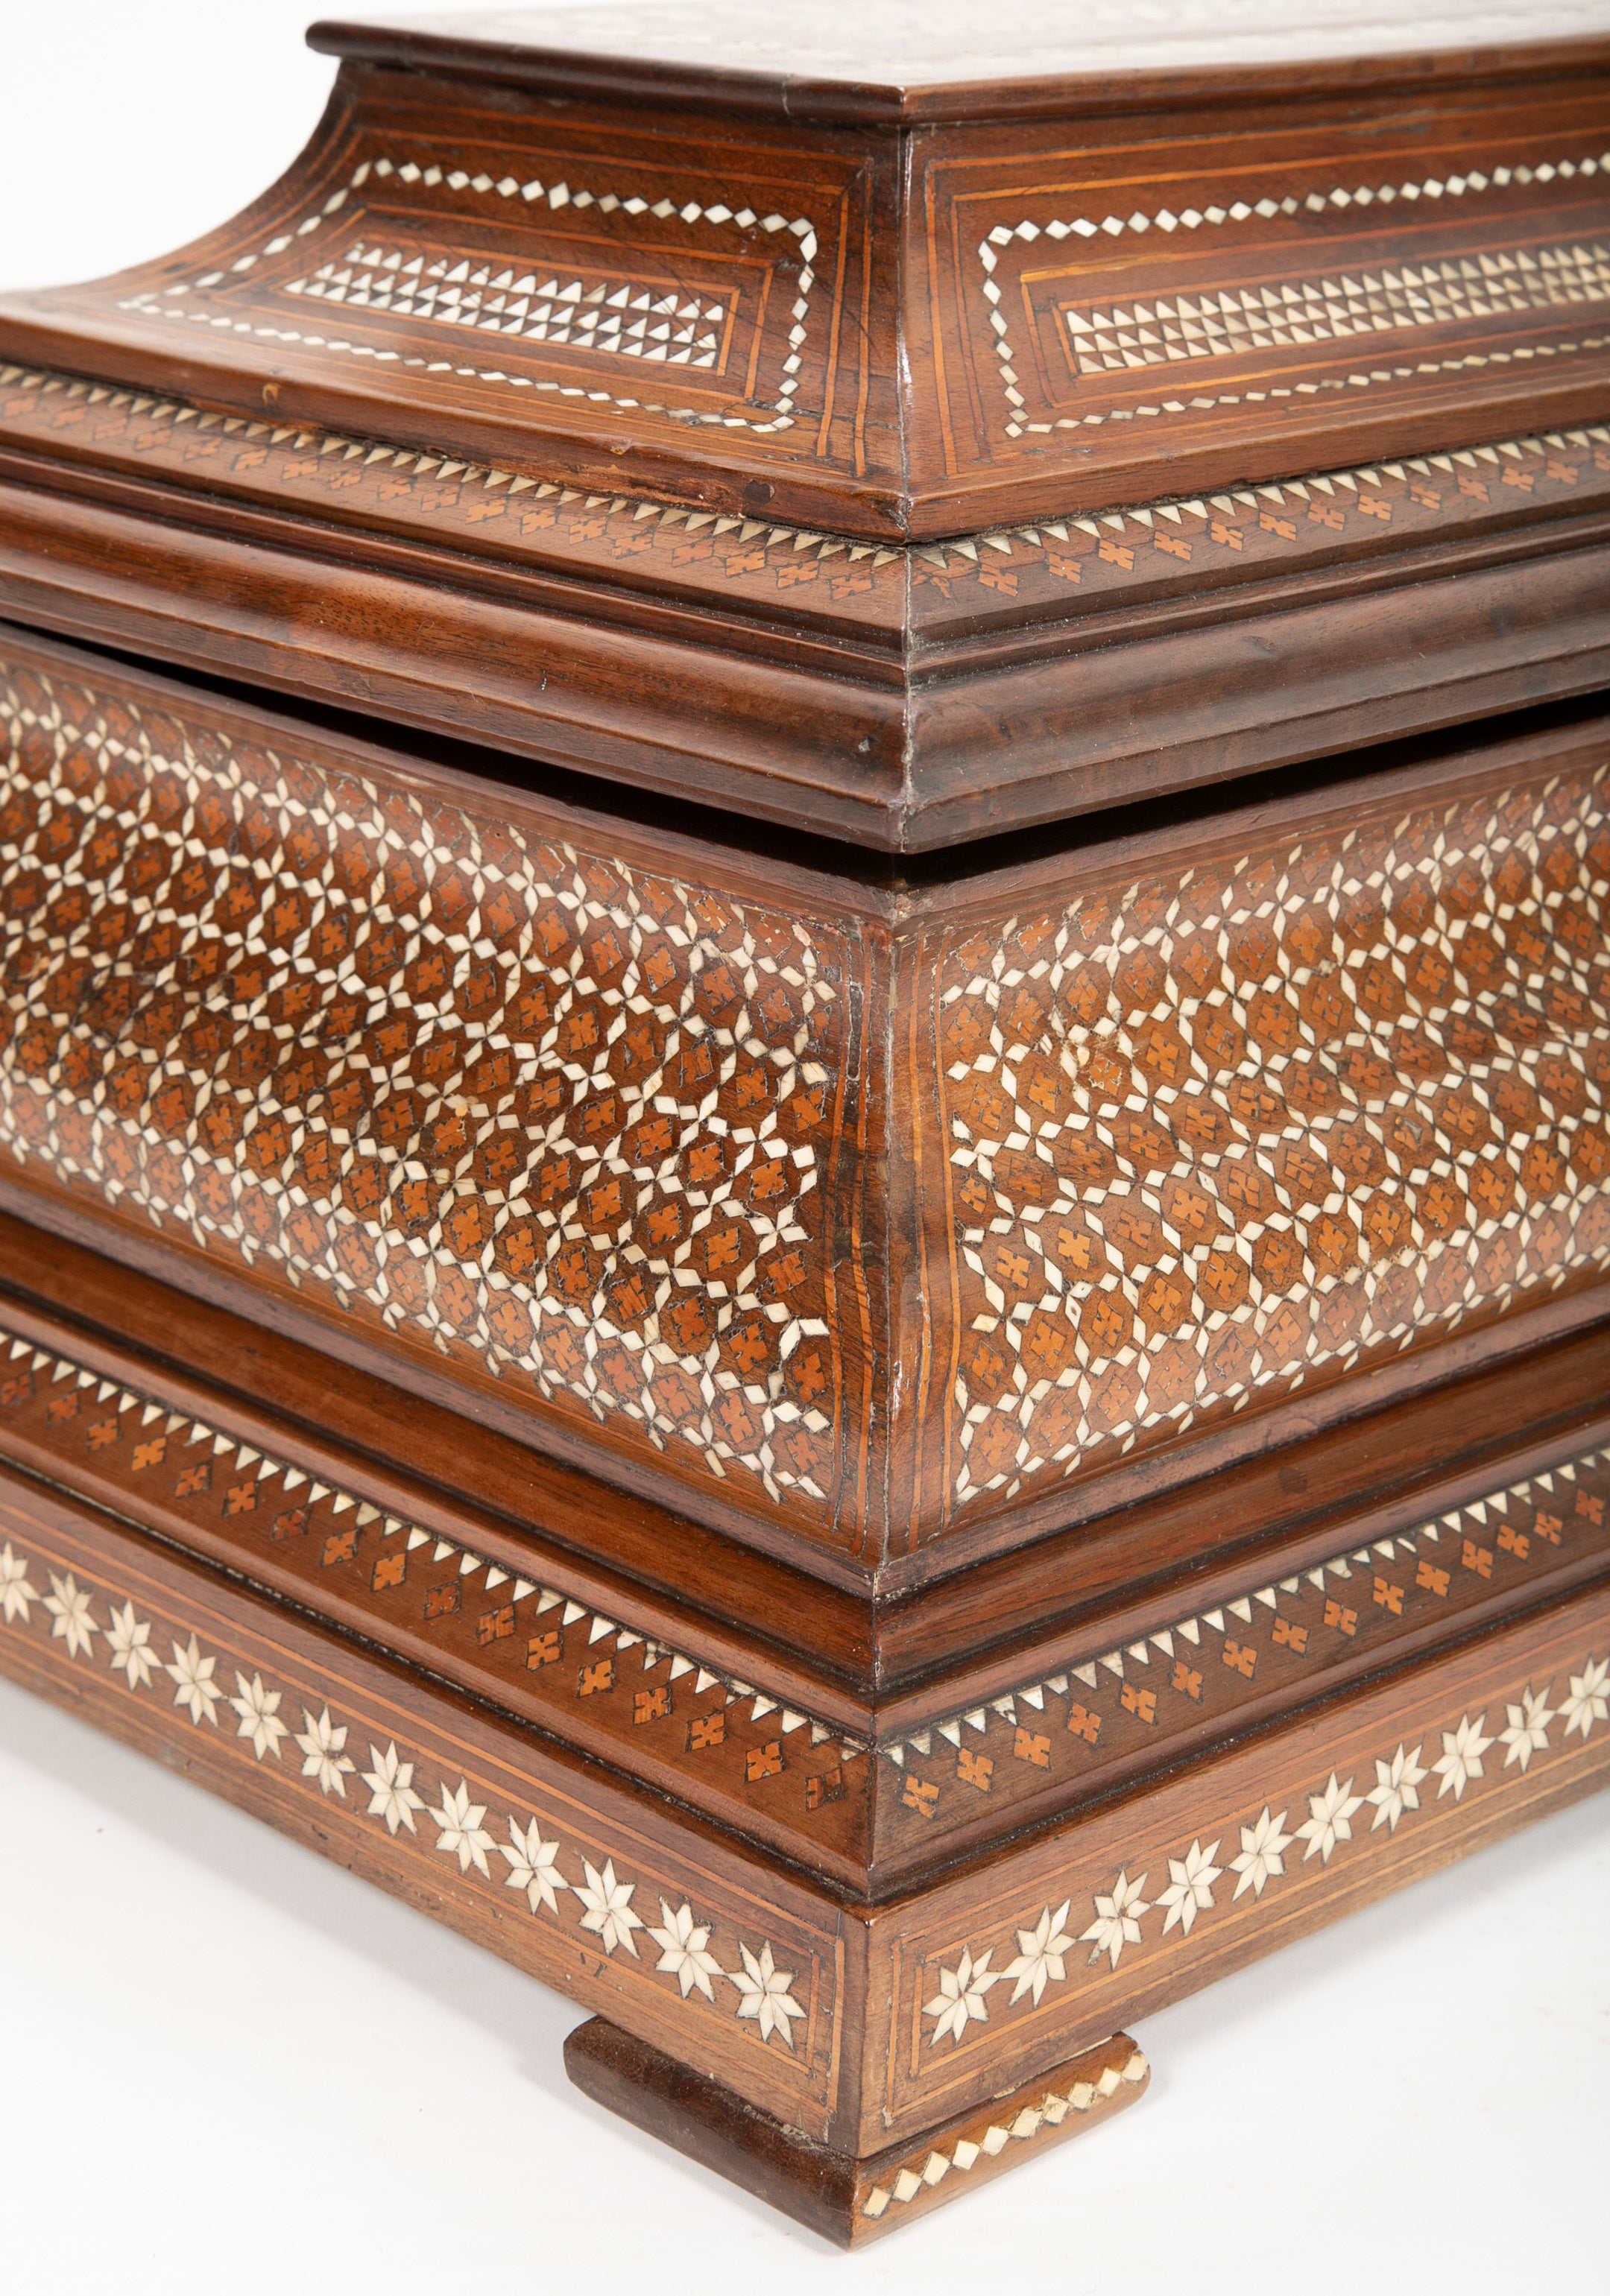 Anglo-Indian Hardwood Casket with Bone Inlay